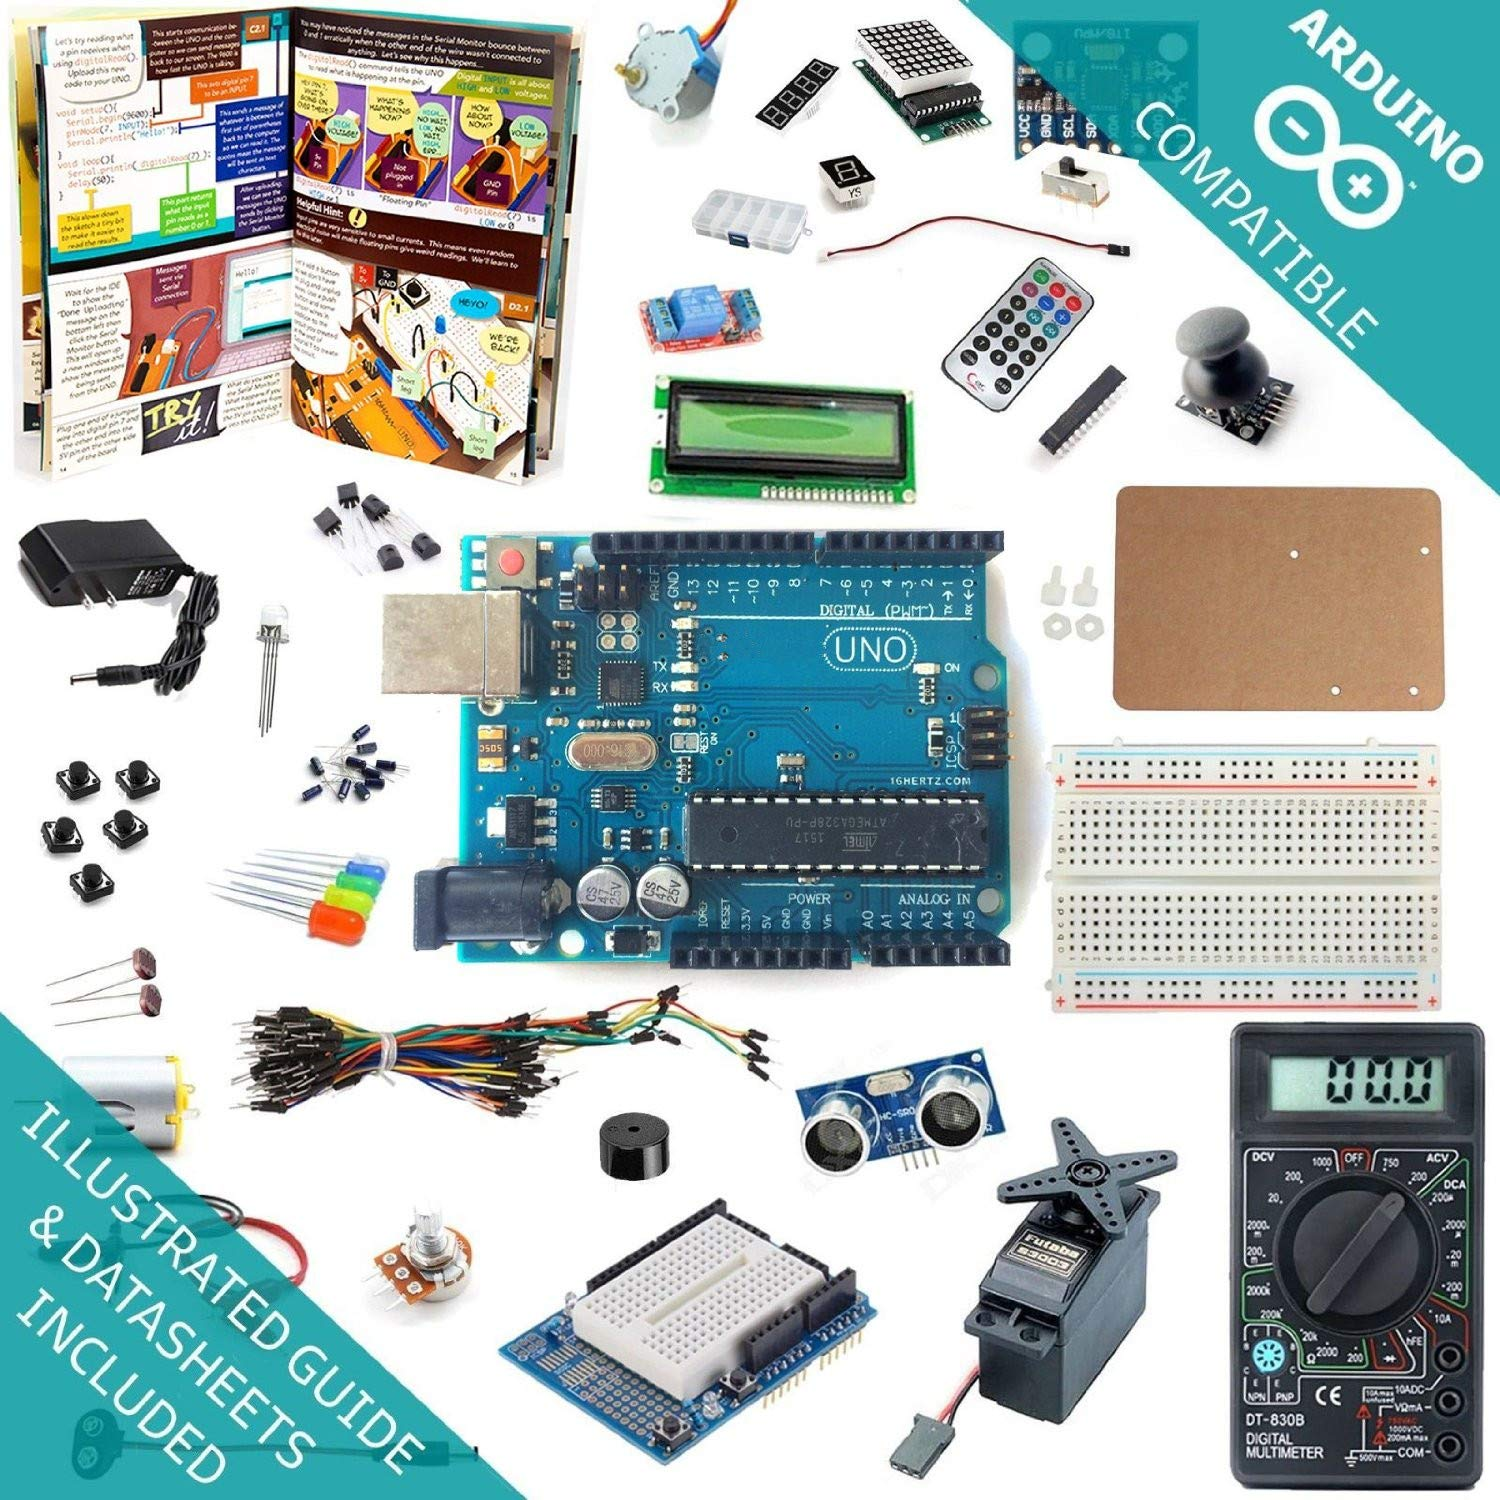 Arduino Uno R3 Kit ARDEST (7M85VW4J)